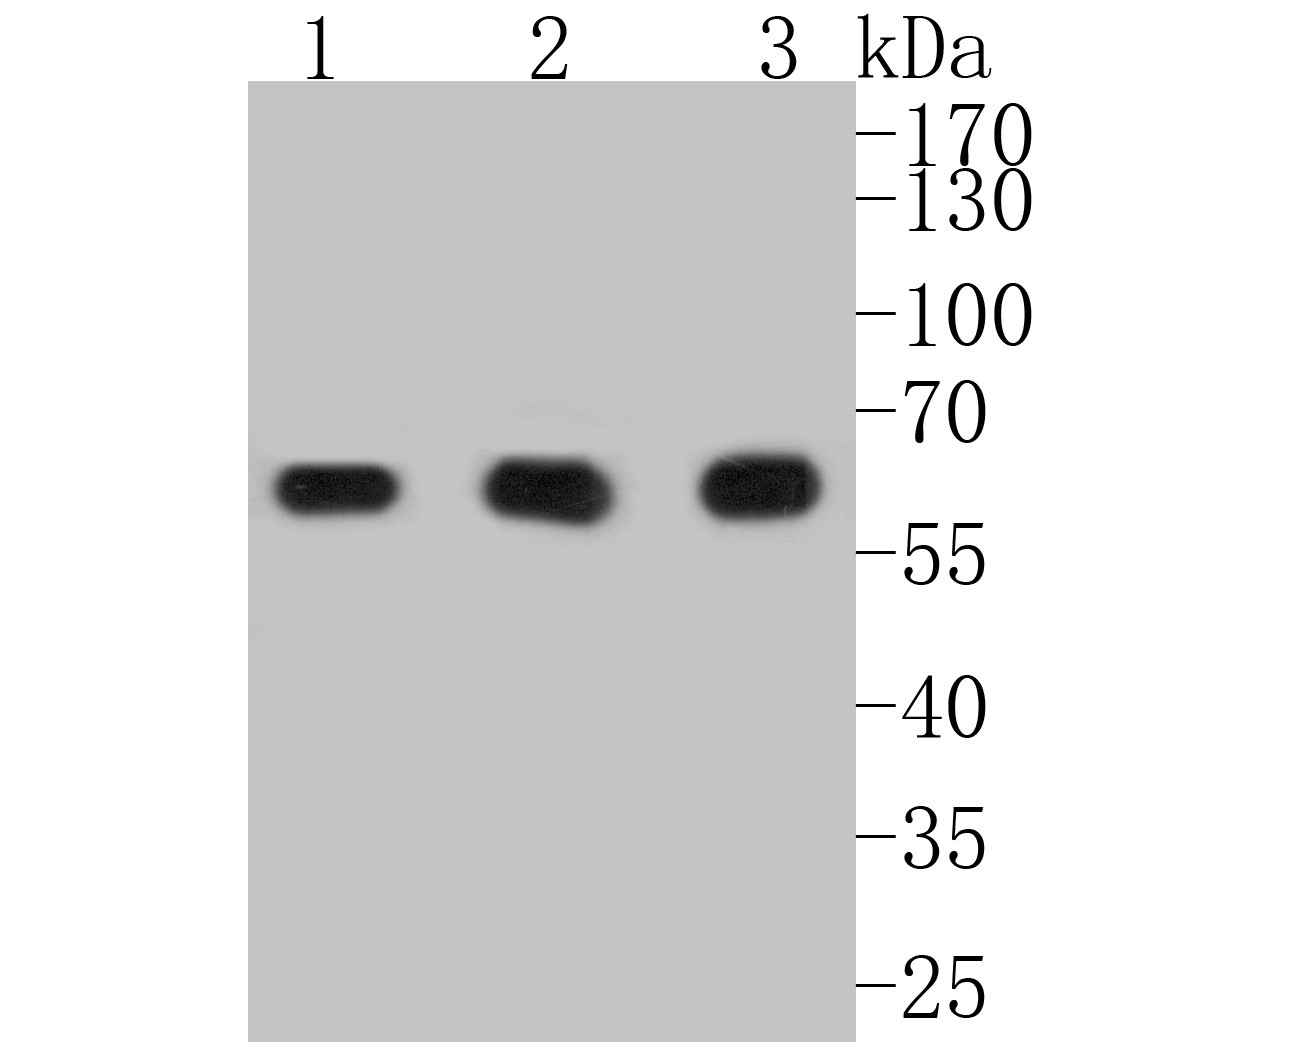 All lanes: Western blot analysis of PKM with anti-PKM antibody (ER1901-90) at 1:500 dilution.<br /> Lane 1: Wild-type MDA-MB-231 whole cell lysate.<br /> Lane 2: PKM knockout MDA-MB-231 whole cell lysate.<br /> <br /> ER1901-90 was shown to specifically react with PKM in wild-type MDA-MB-231 cells. No band was observed when PKM knockout samples were tested. Wild-type and PKM knockout samples were subjected to SDS-PAGE. Proteins were transferred to a PVDF membrane and blocked with 5% NFDM in TBST for 1 hour at room temperature. The primary Anti-PKM antibody (ER1901-90, 1/500) and  Anti-GAPDH antibody (ET1601-4, 1/10000) were used in 5% BSA at room temperature for 2 hours. Goat Anti-Rabbit IgG H&L (HRP) Secondary Antibody (HA1001) at 1:200,000 dilution was used for 1 hour at room temperature.